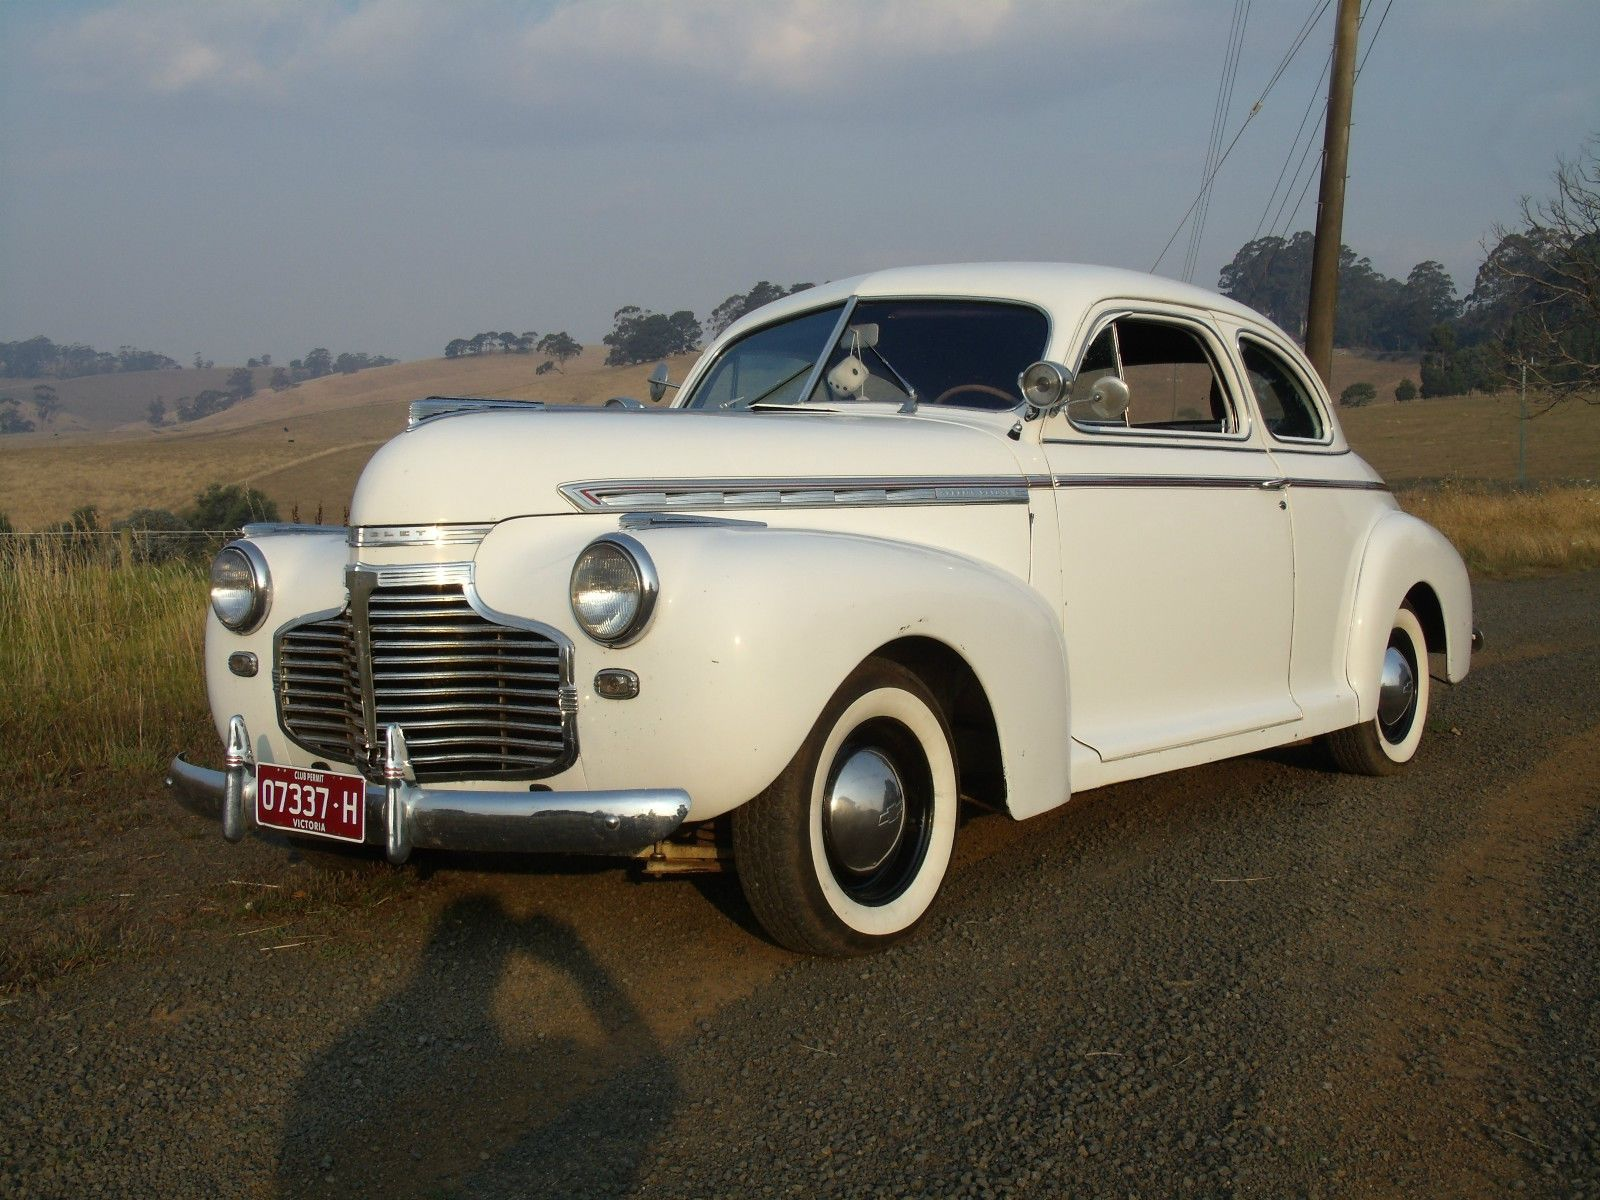 There is a restored rhd coupe there was another rhd project car on the mornington peninsular in the both been in australia from new